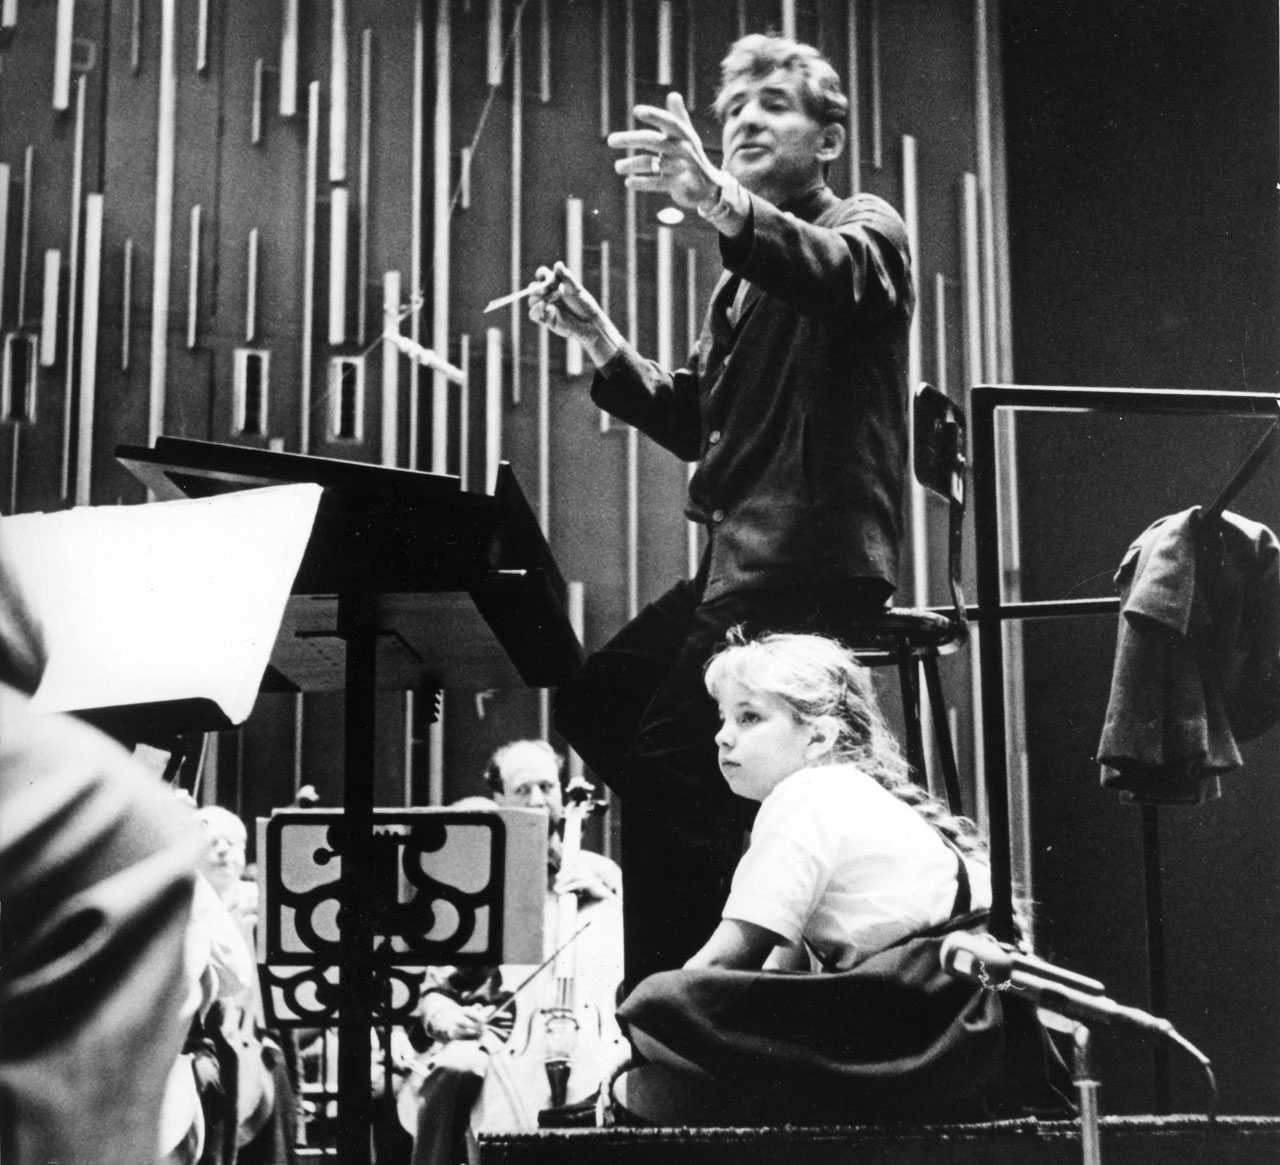 Jamie Bernstein with her father, Leonard Bernstein, at a Young People's Concert